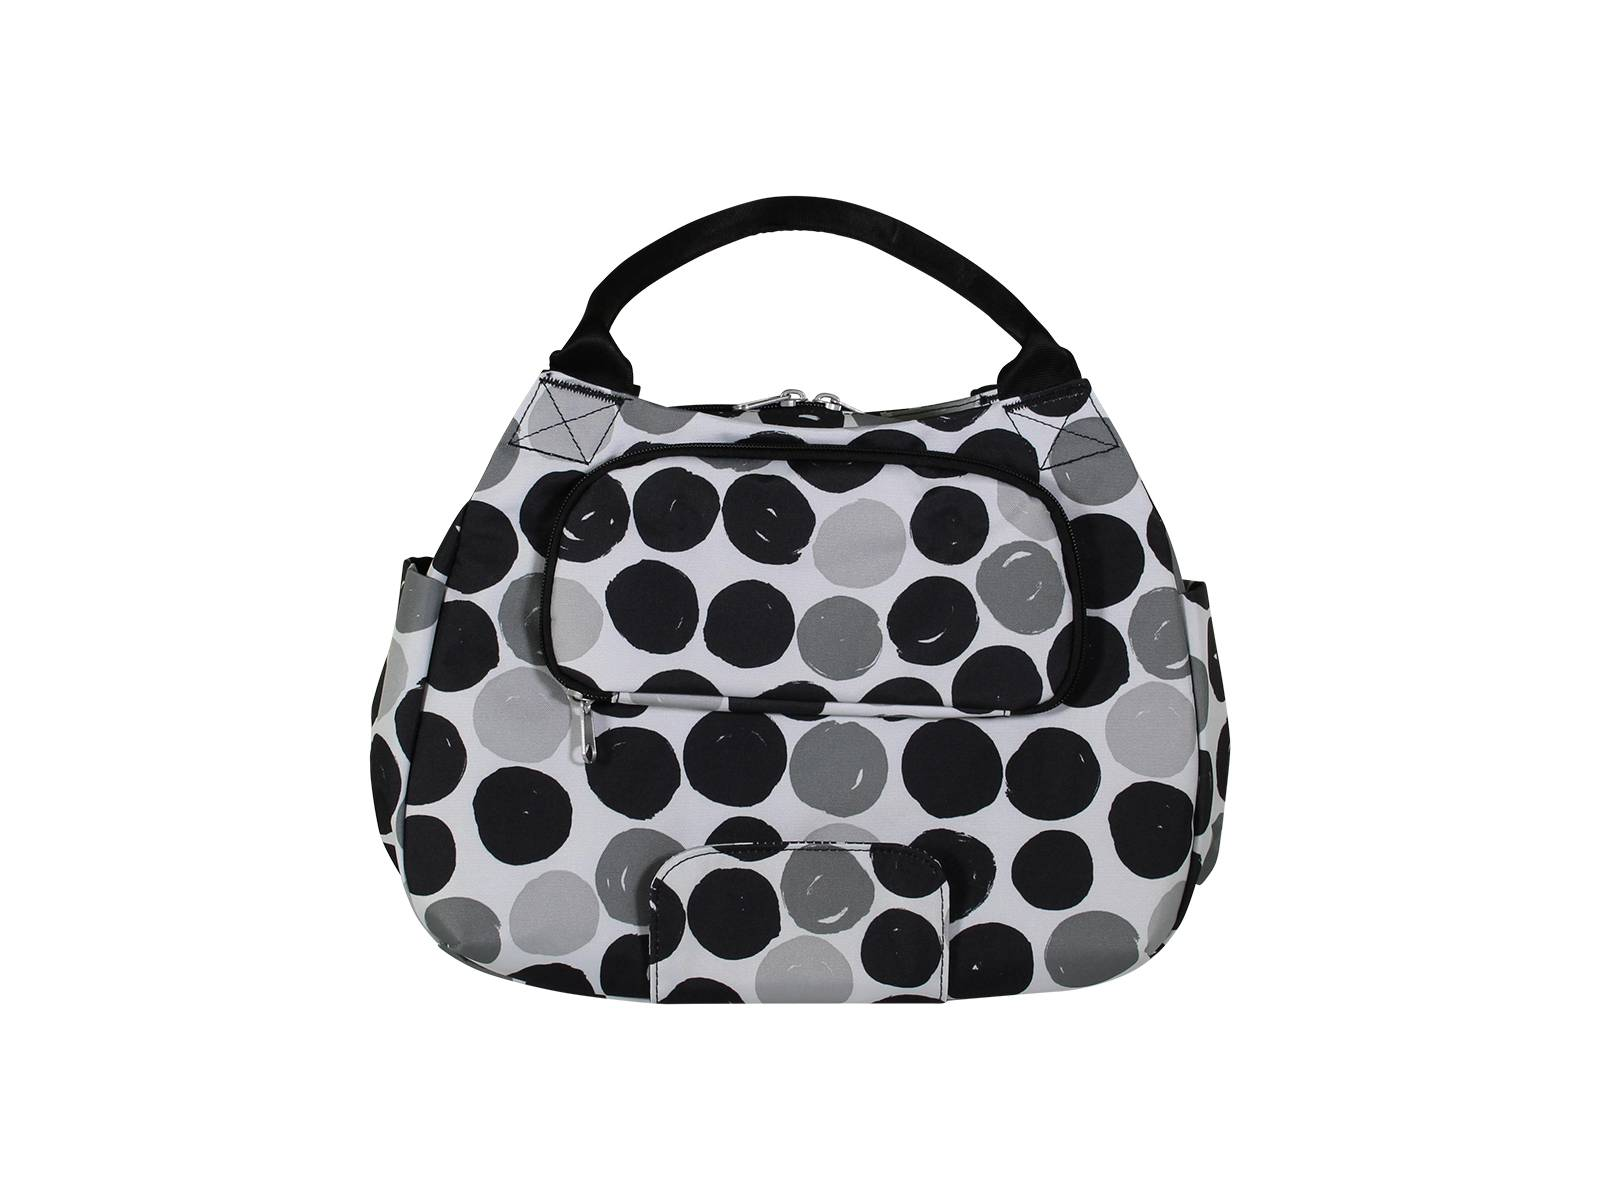 f9c1bac4490 New Looxs bike bag Tosca Midi Dots black | Bicyclecomfort